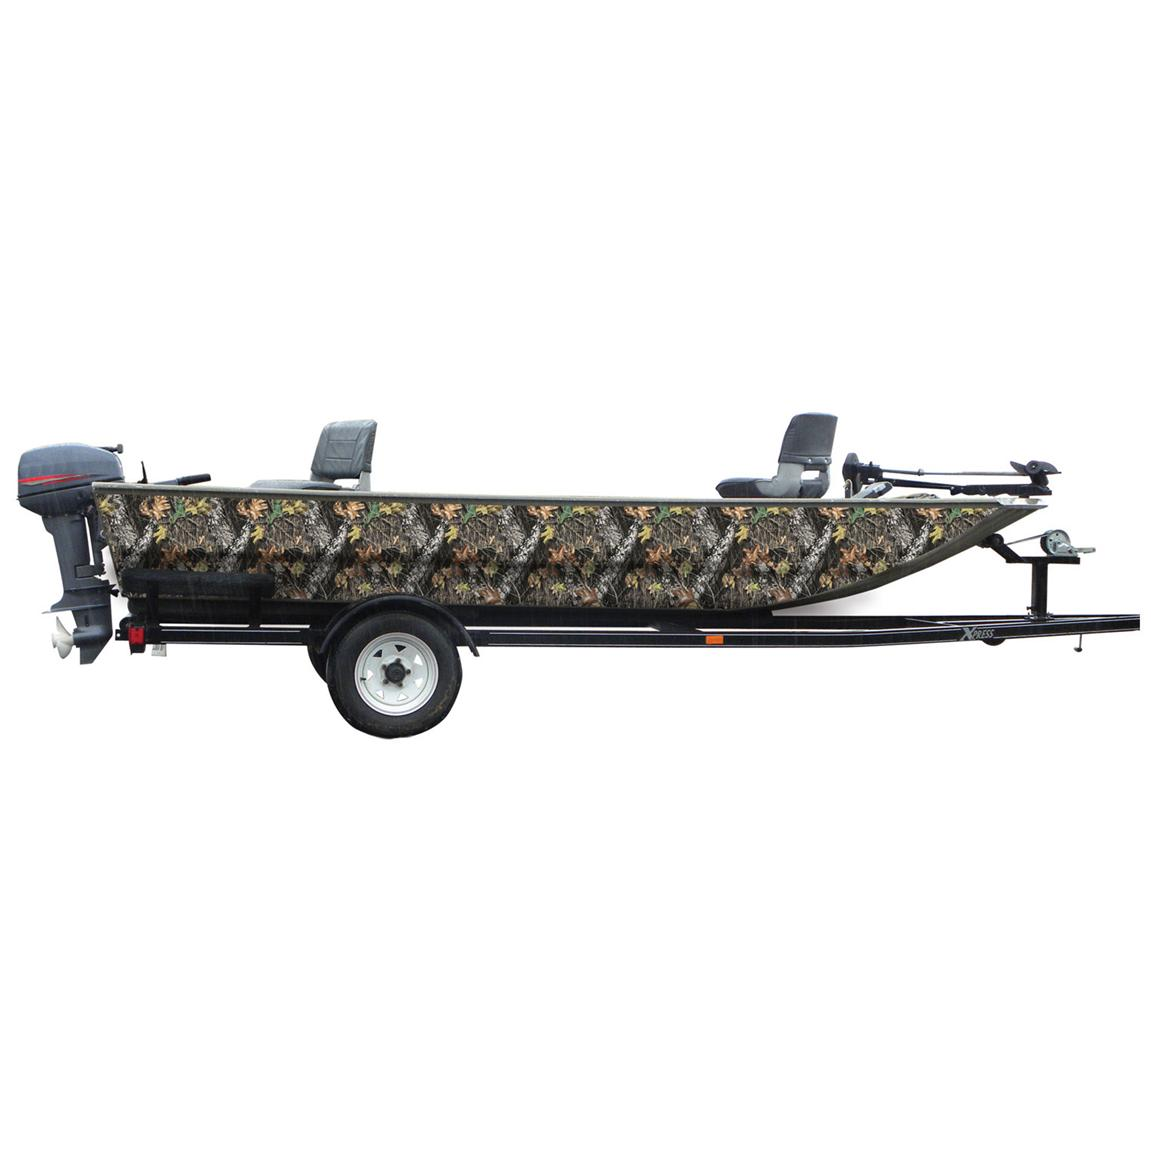 Mossy Oak Graphics® 16 foot Boat Side Camouflage Kit, MOBU